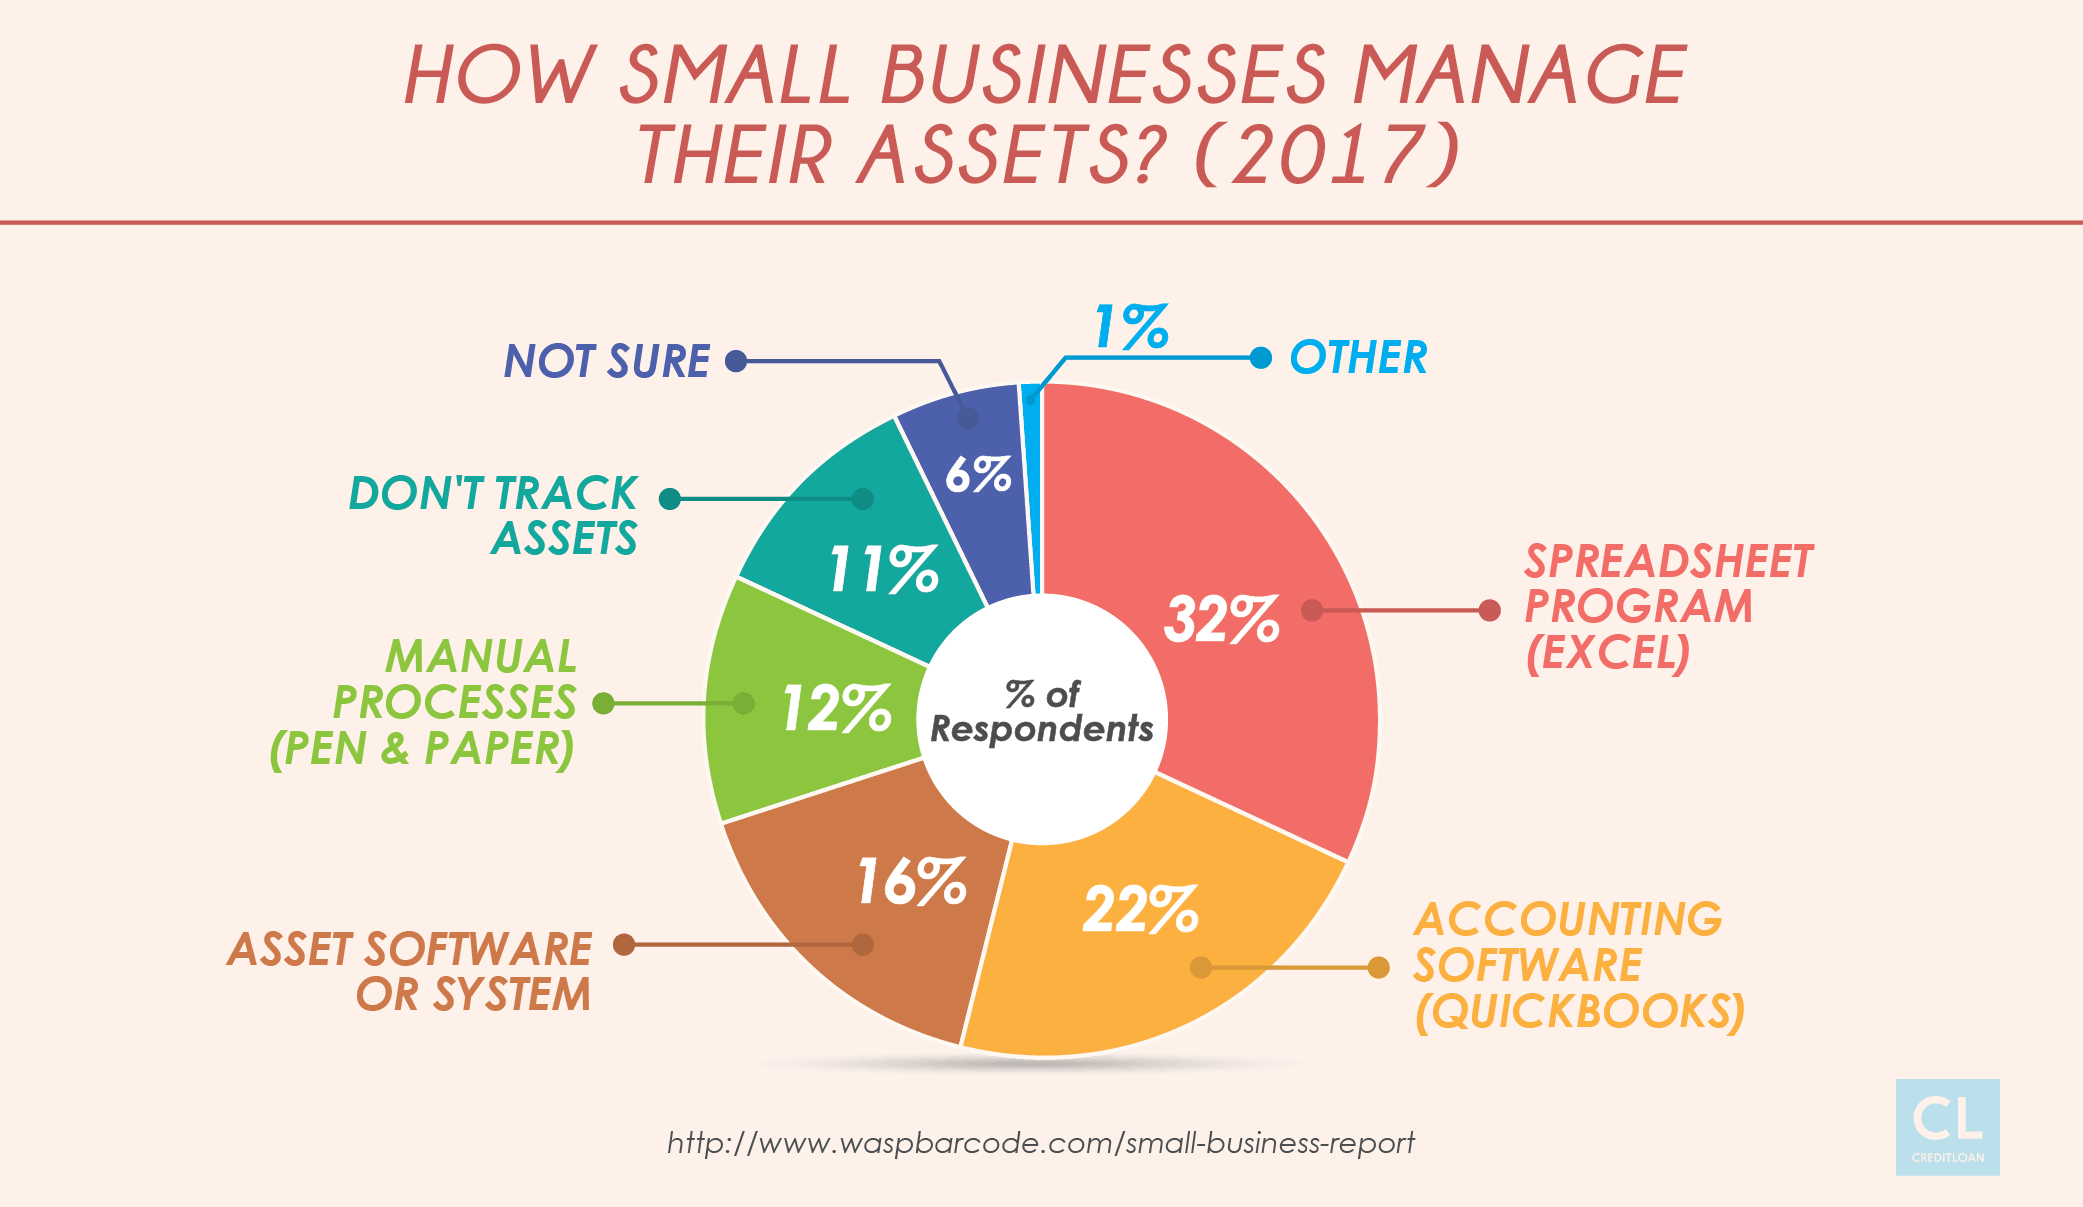 Survey: How Small Business Manager Their Assets?